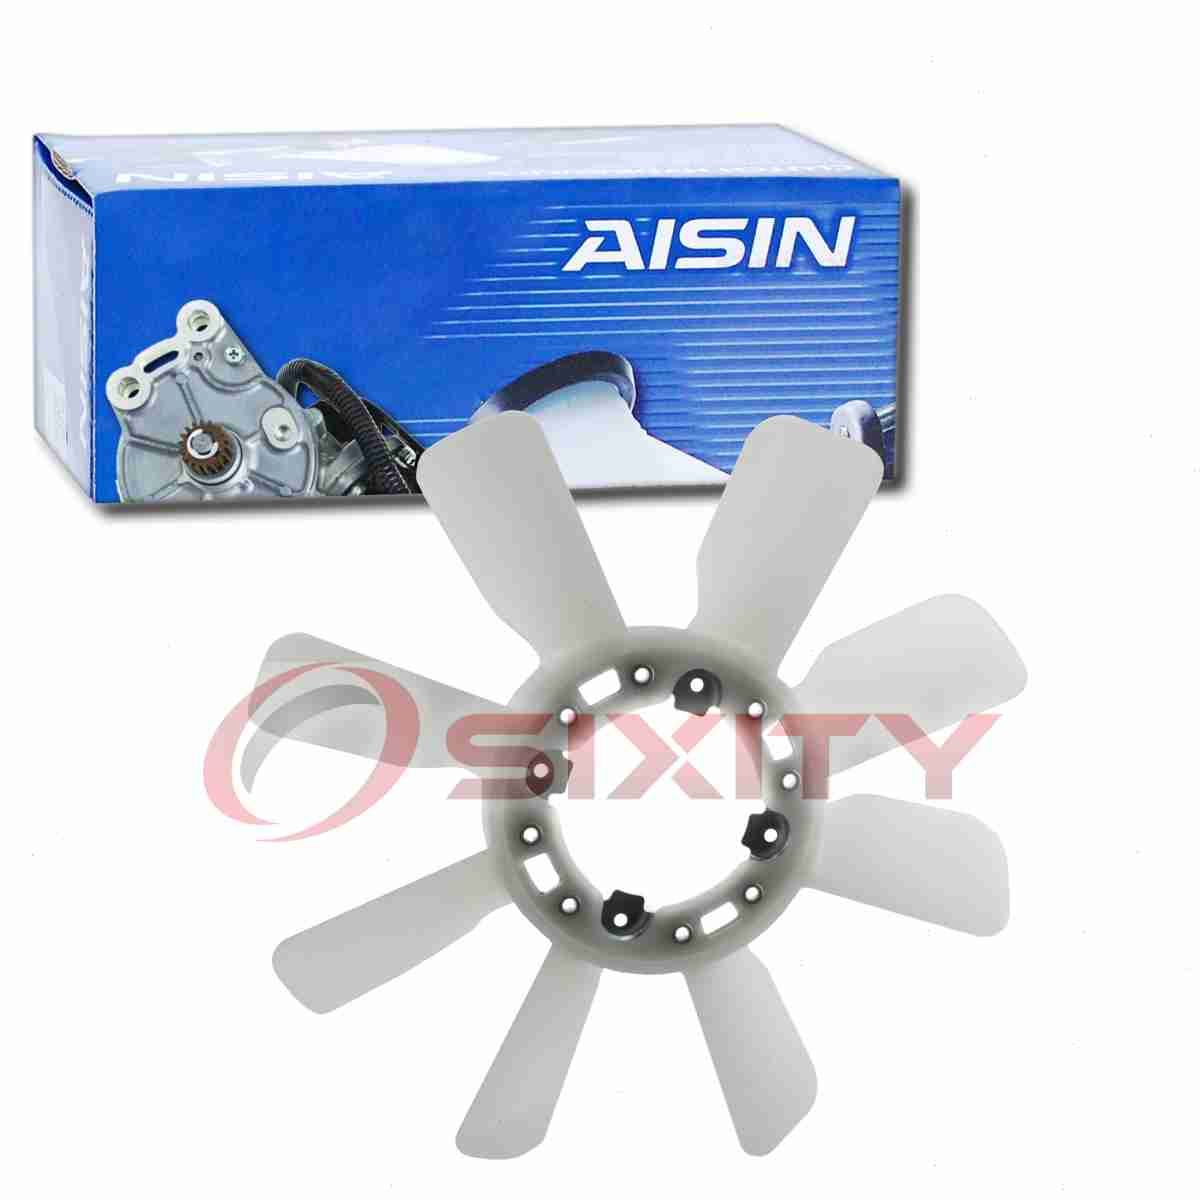 AISIN Engine Cooling Fan Blade for 1991-1992 Toyota Land Cruiser 4.0L L6 di